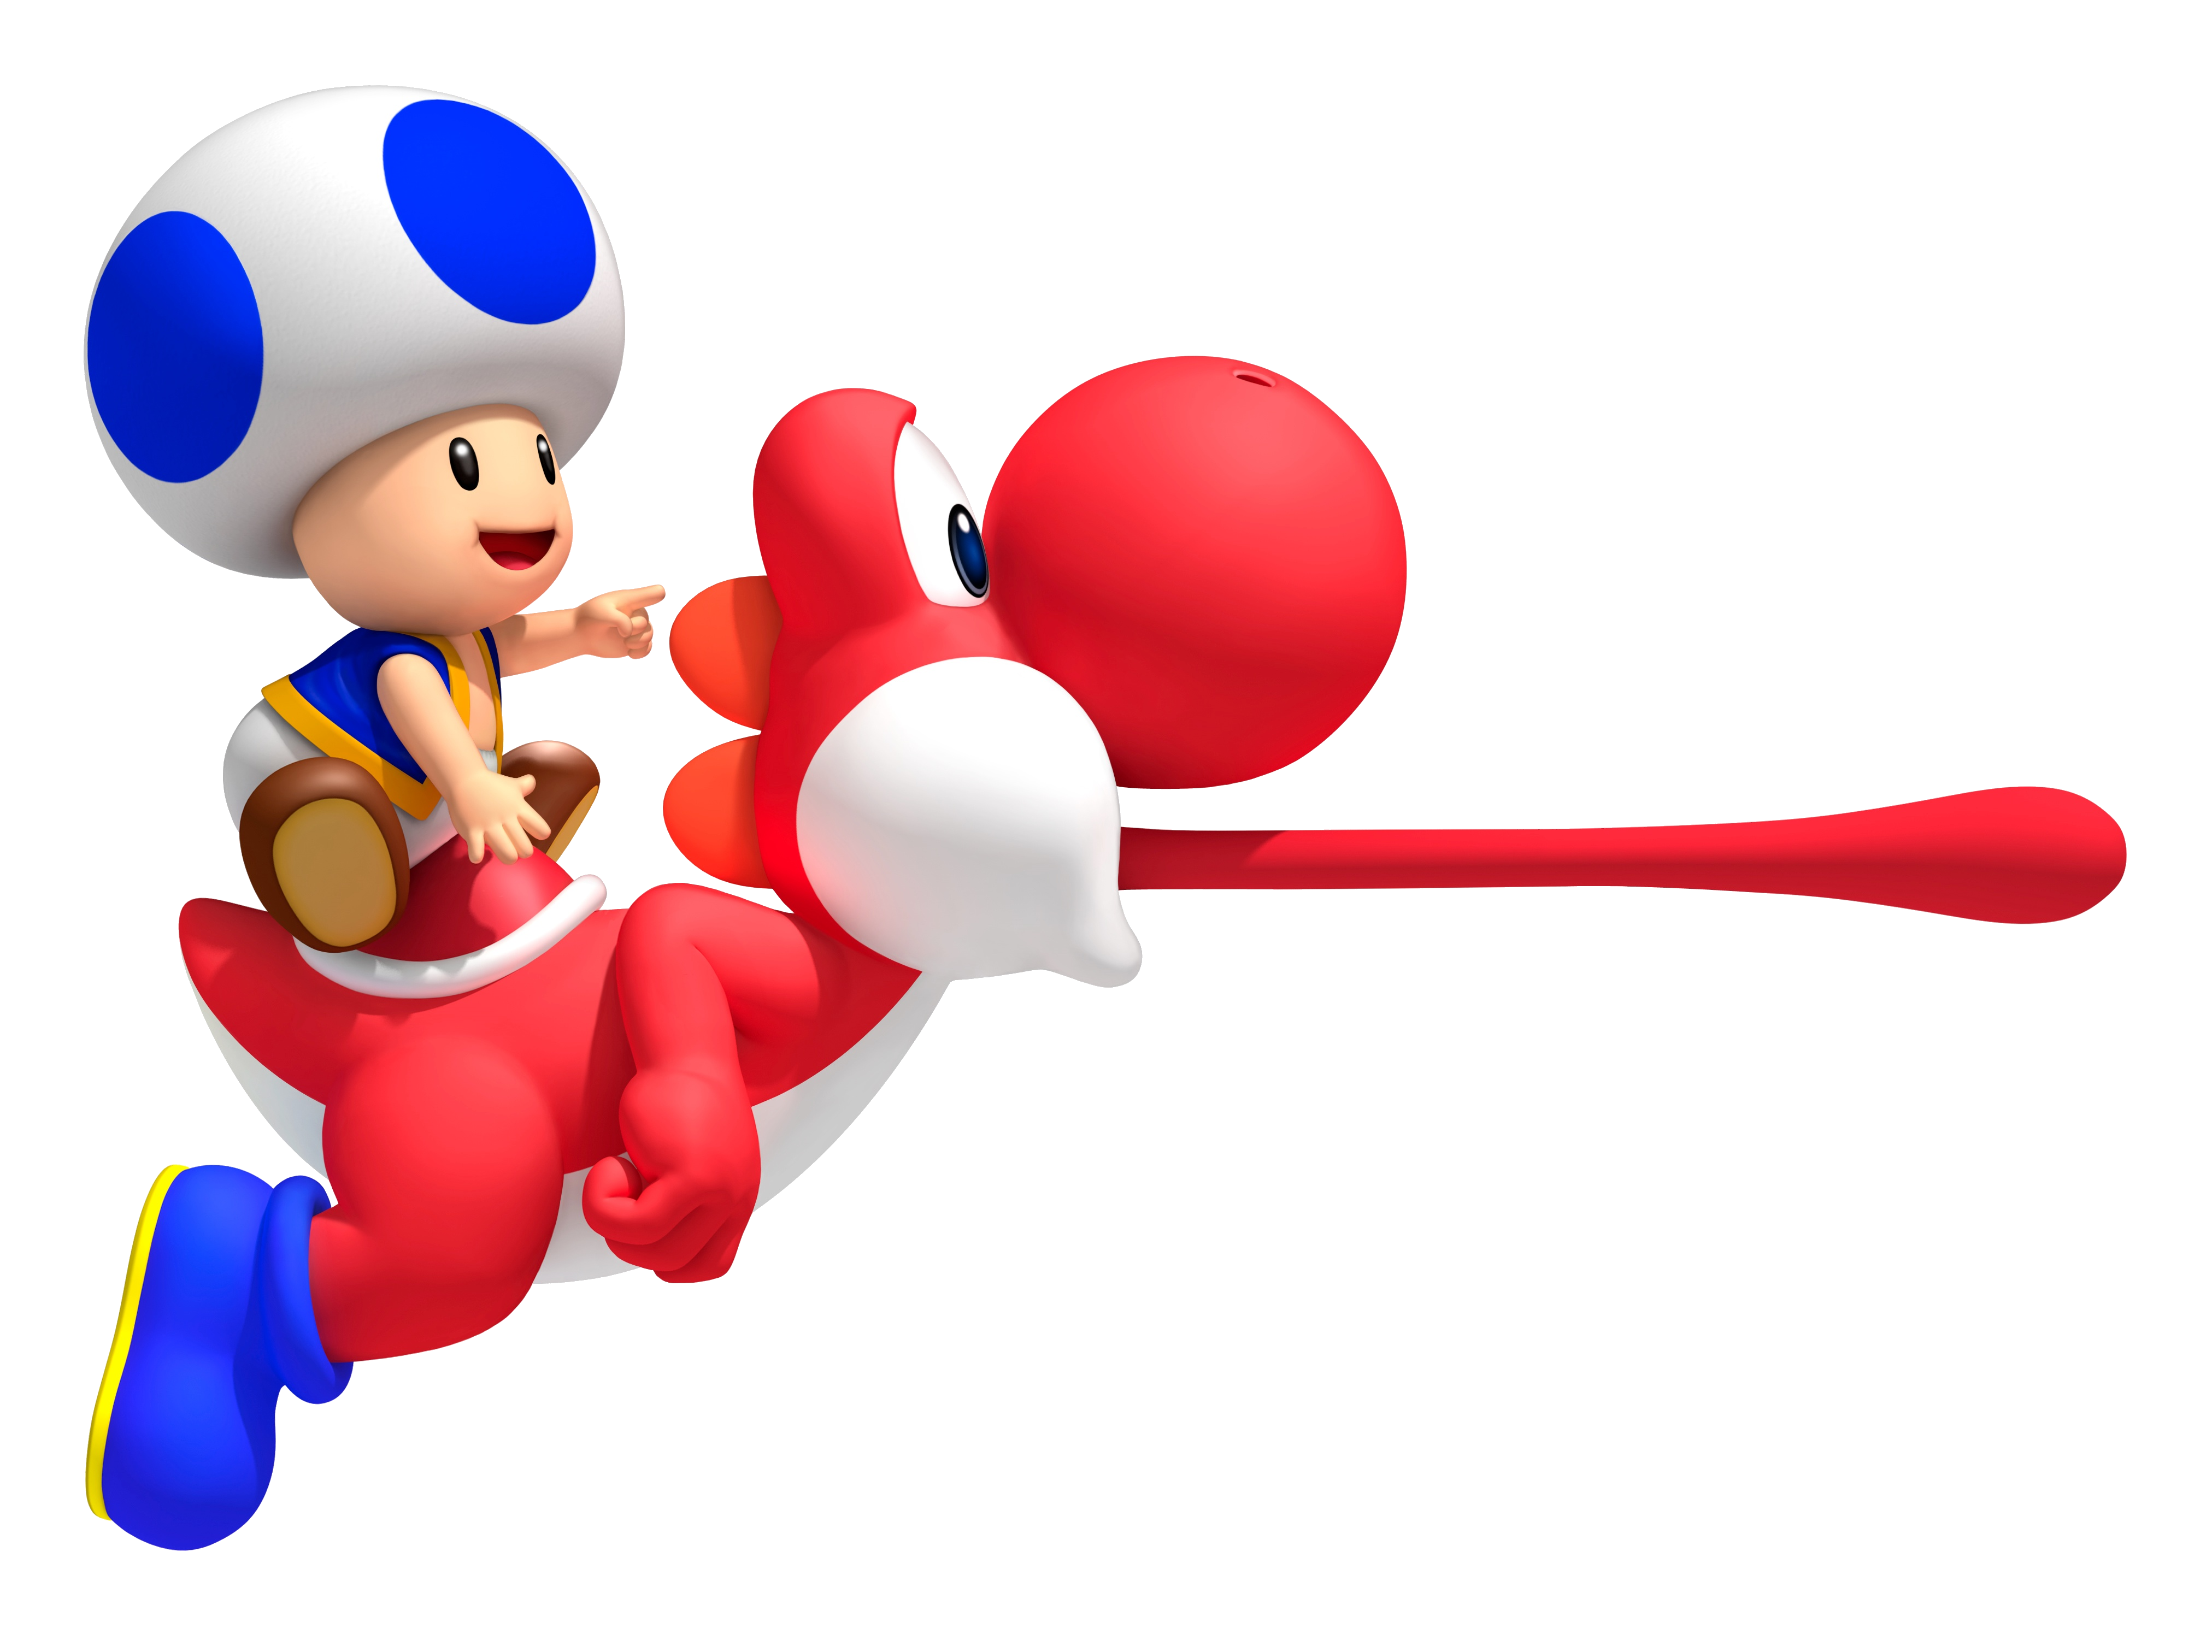 4048x3024 30 Toad (Mario) HD Wallpapers | Background Images ...